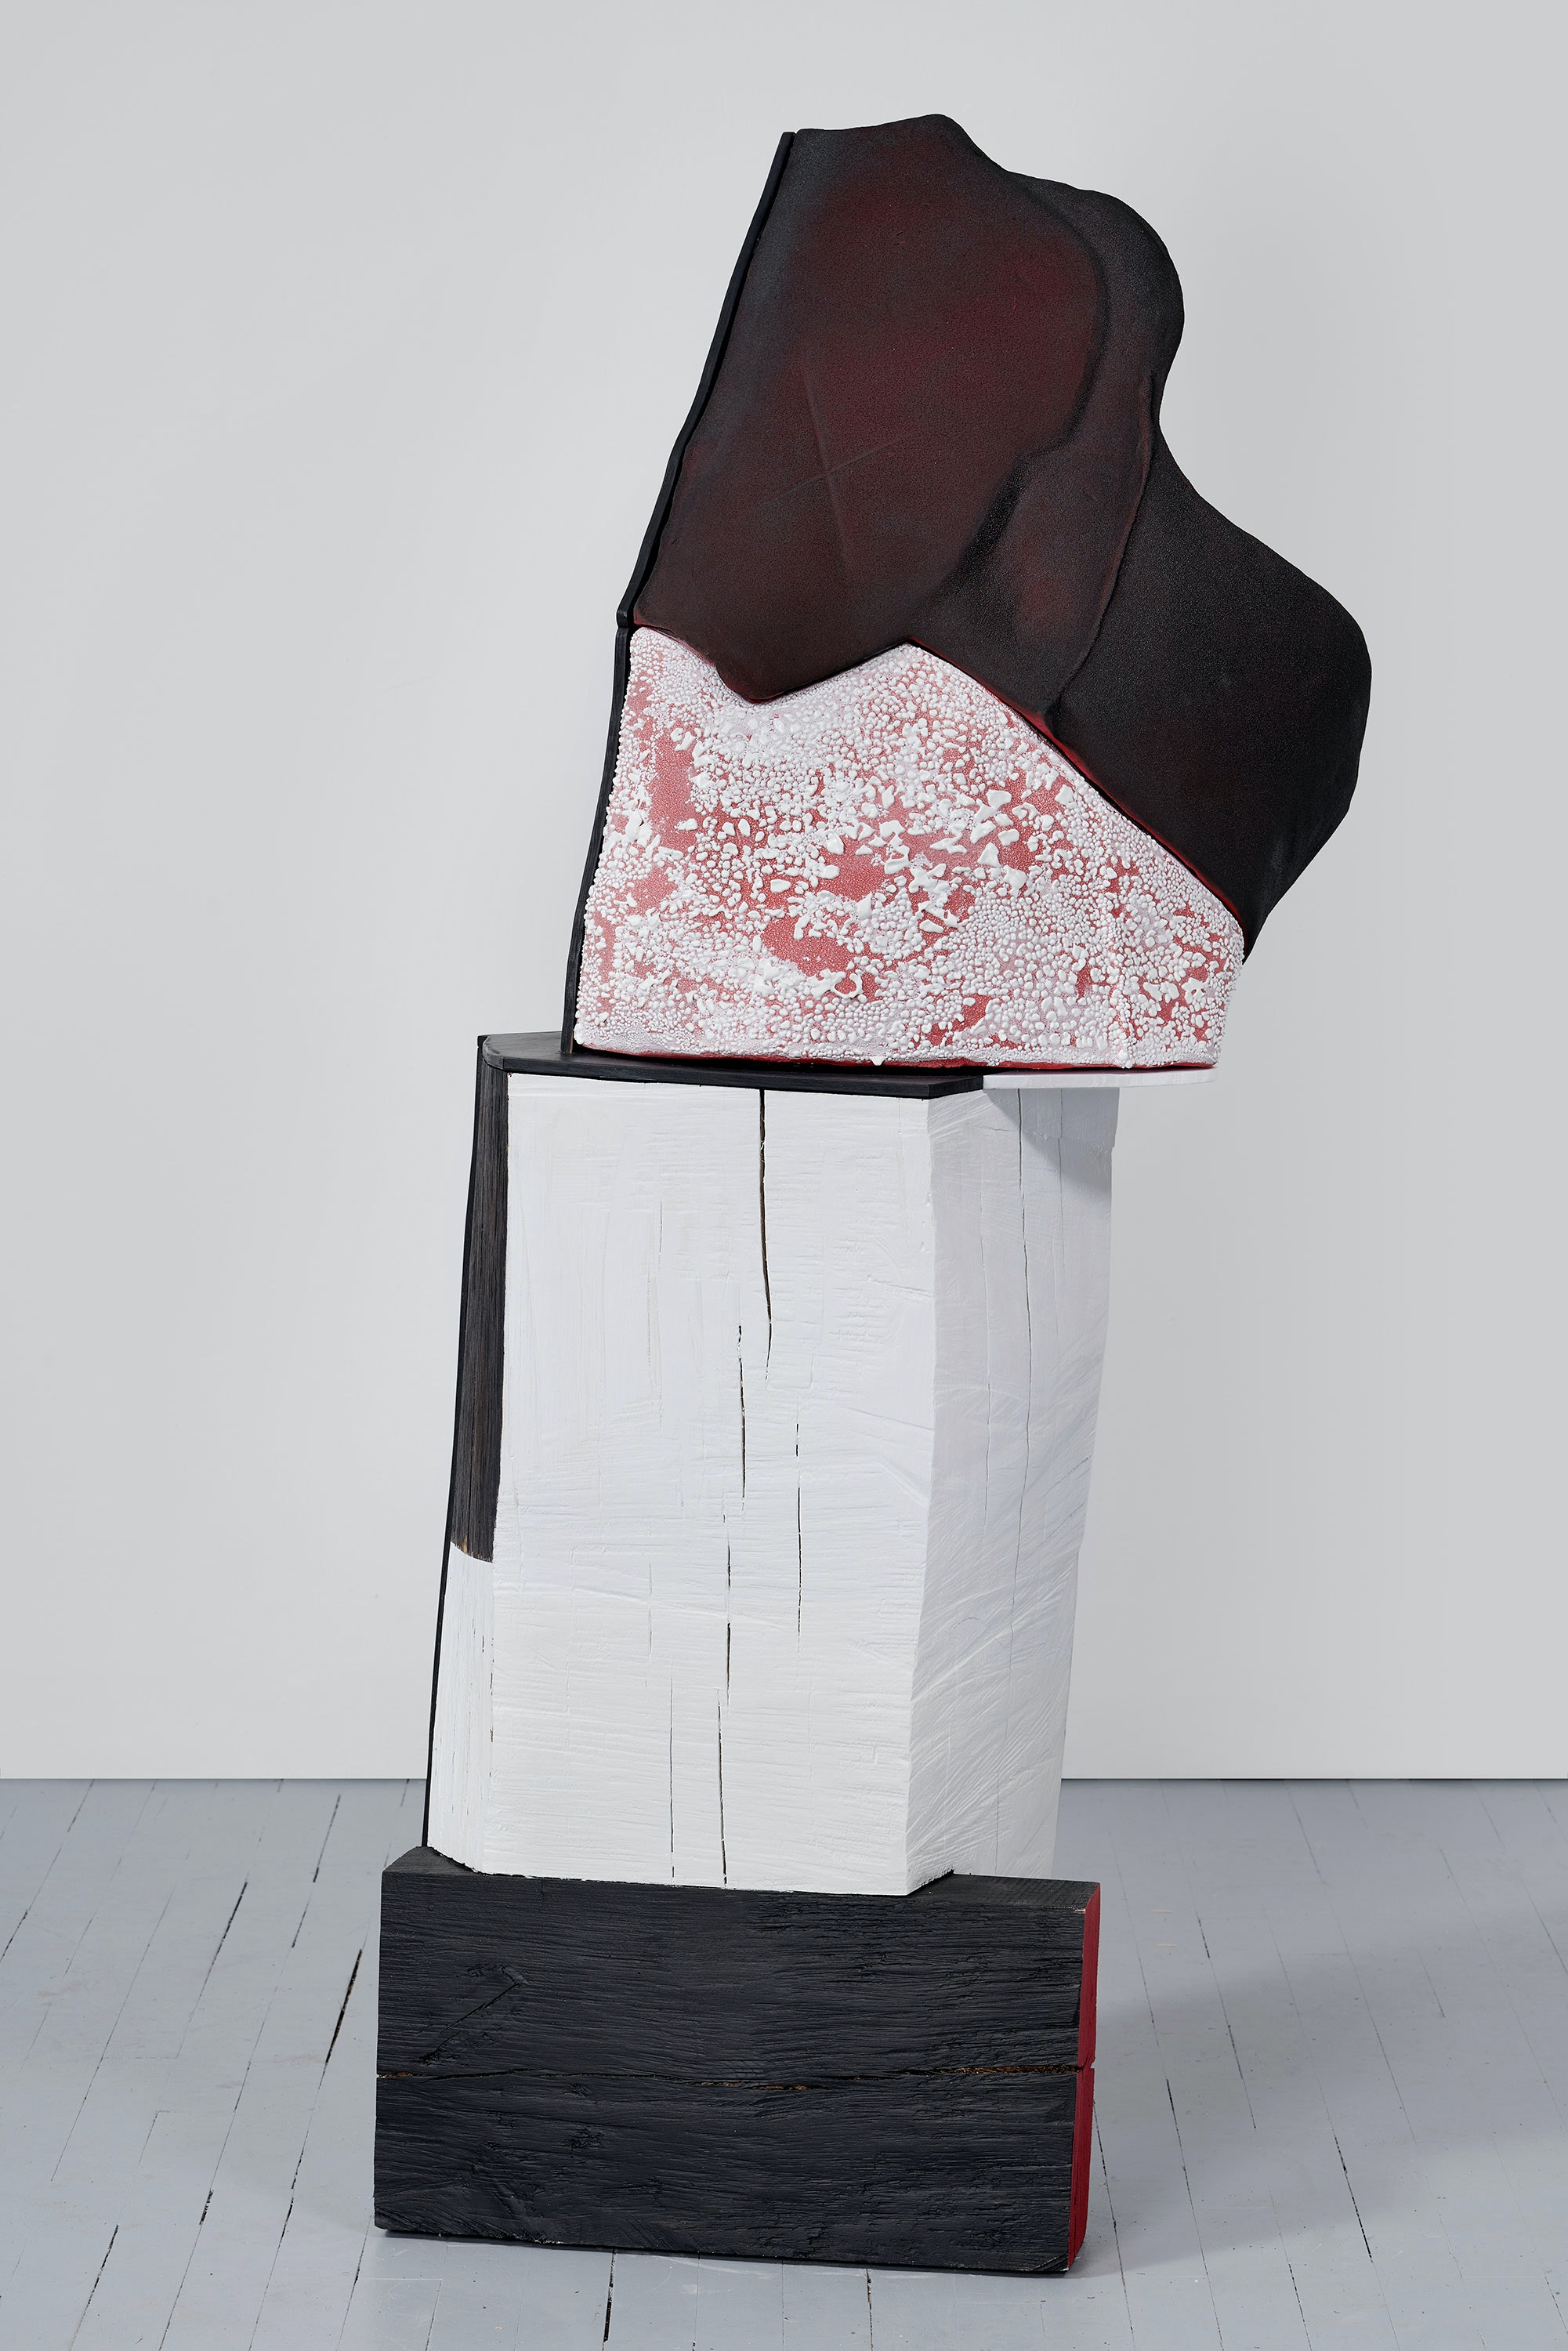 Arlene Shechet, <em>In My View</em>, 2020. Glazed ceramic, painted hardwood, painted plywood, 58 x 26 x 20 inches. © Arlene Shechet, courtesy Pace Gallery Photography by Phoebe d'Heurle.